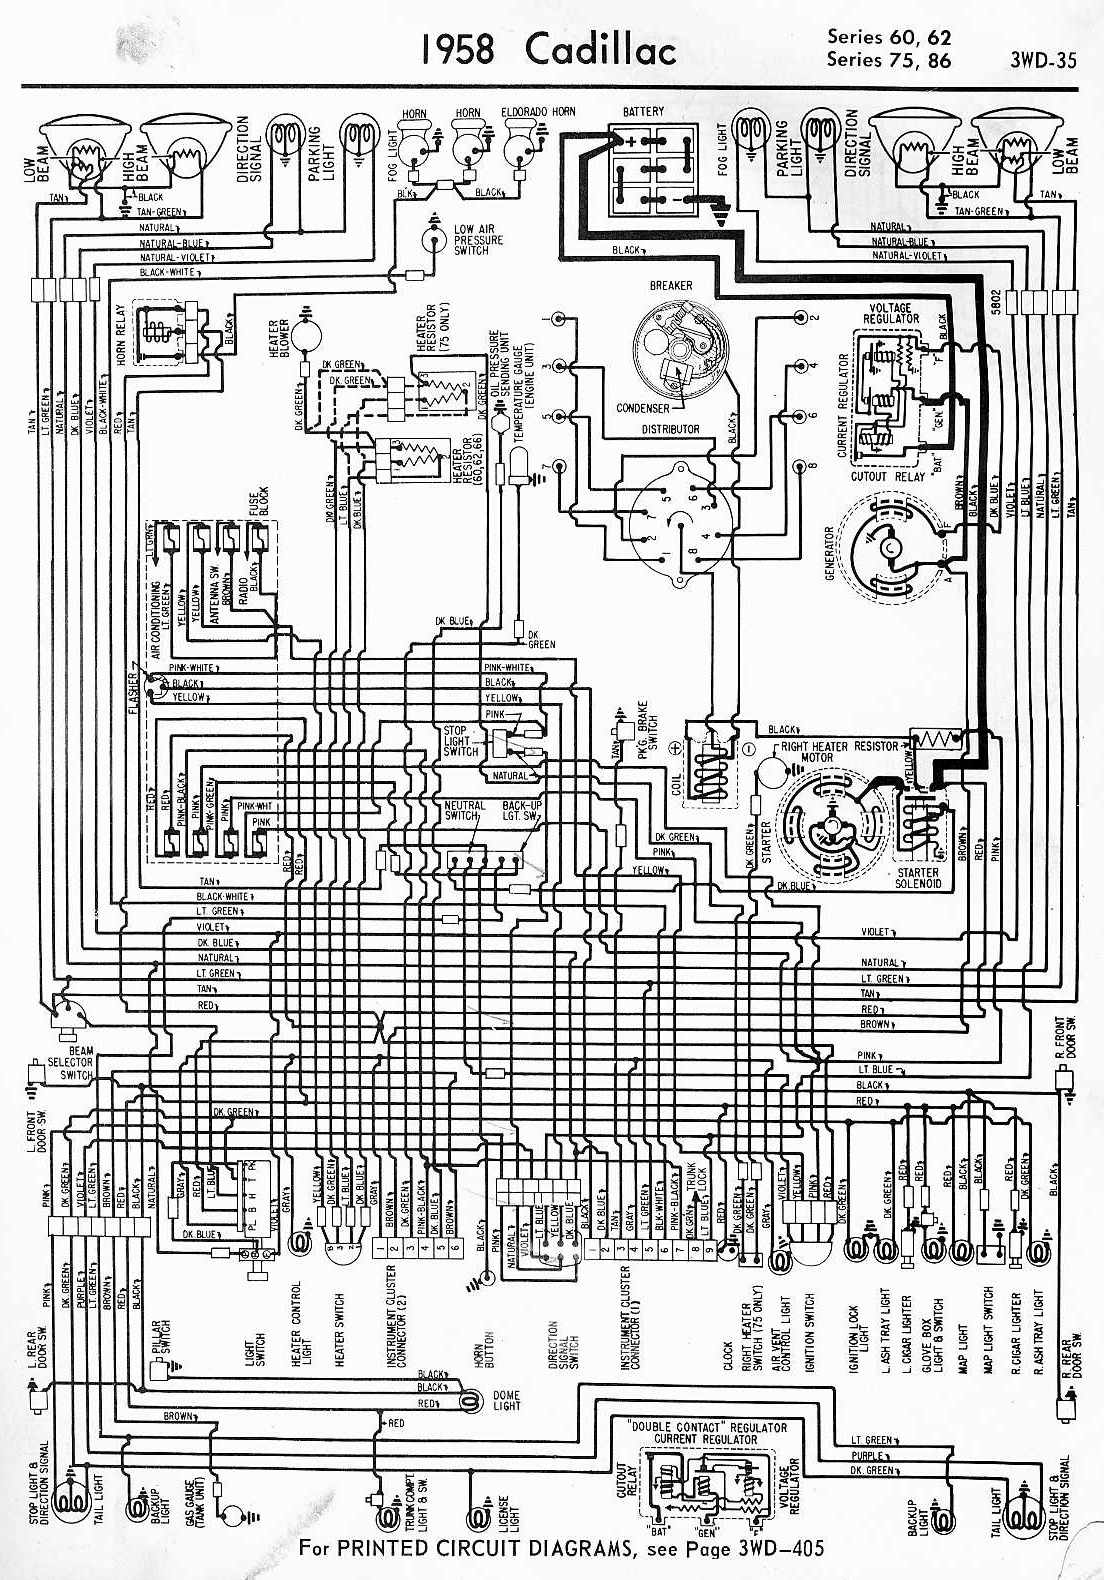 1966 Cadillac Coupe Deville Wiring Diagram Third Level 66 Thunderbird Schematic Starter